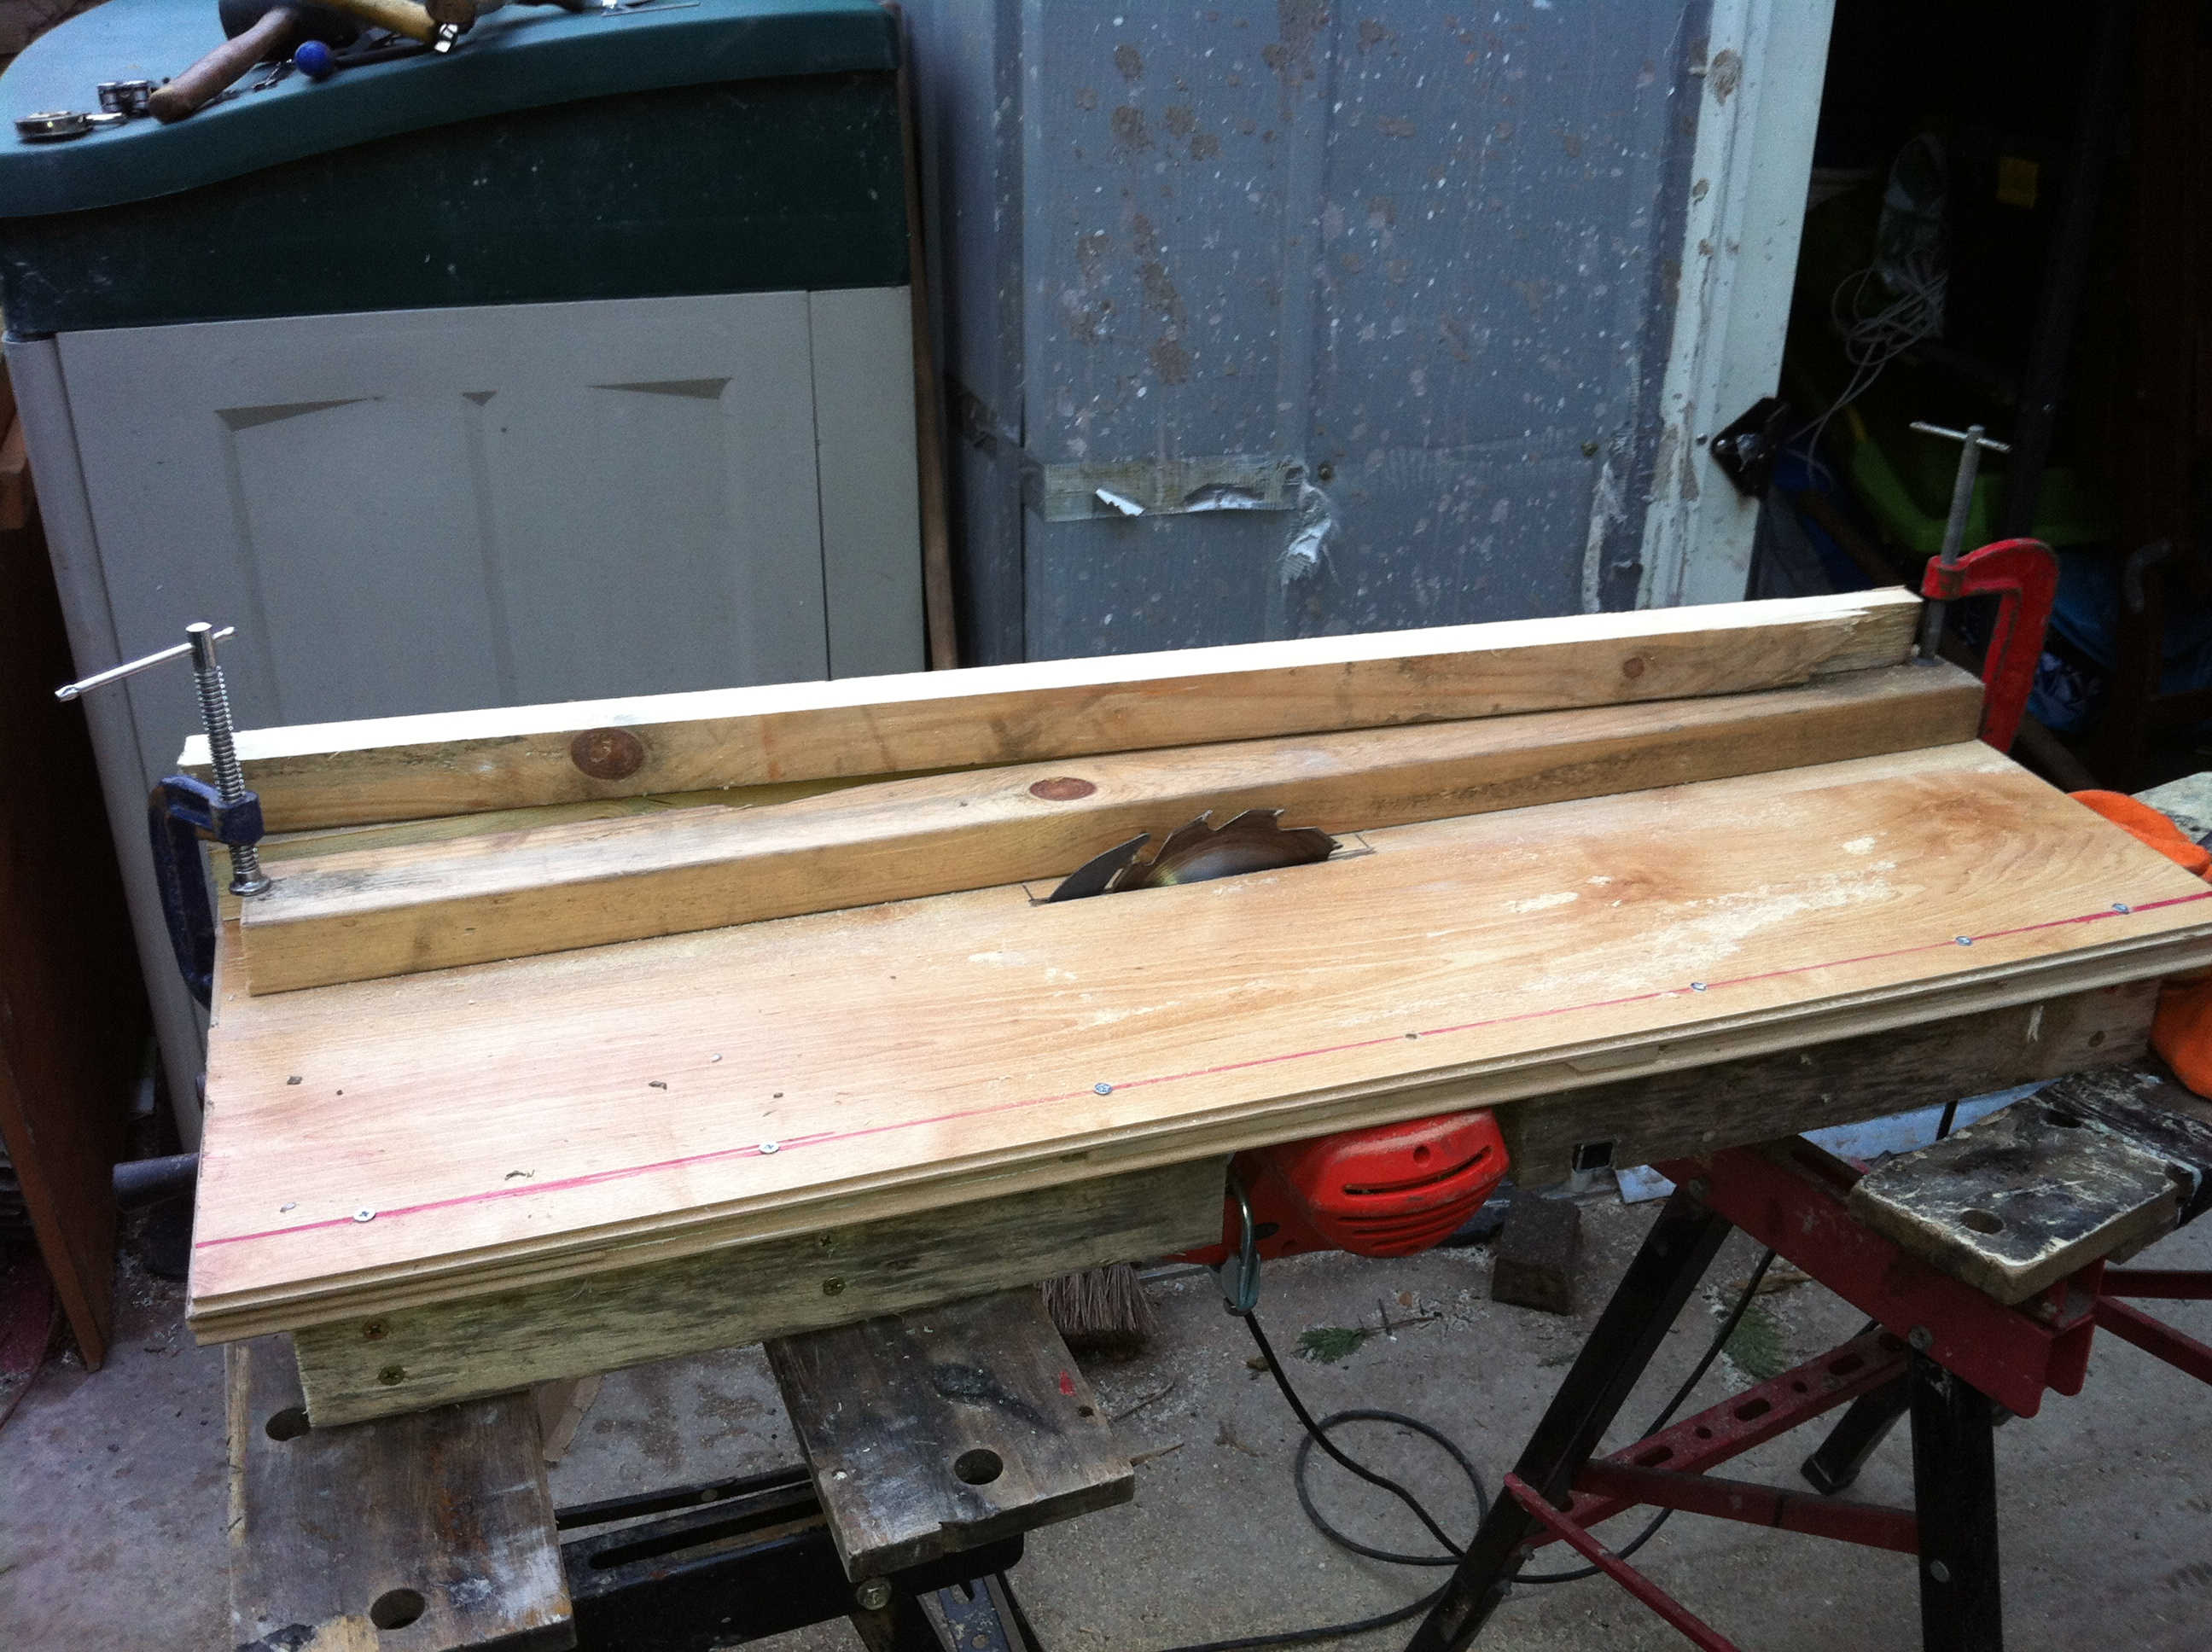 My version of a Table Saw